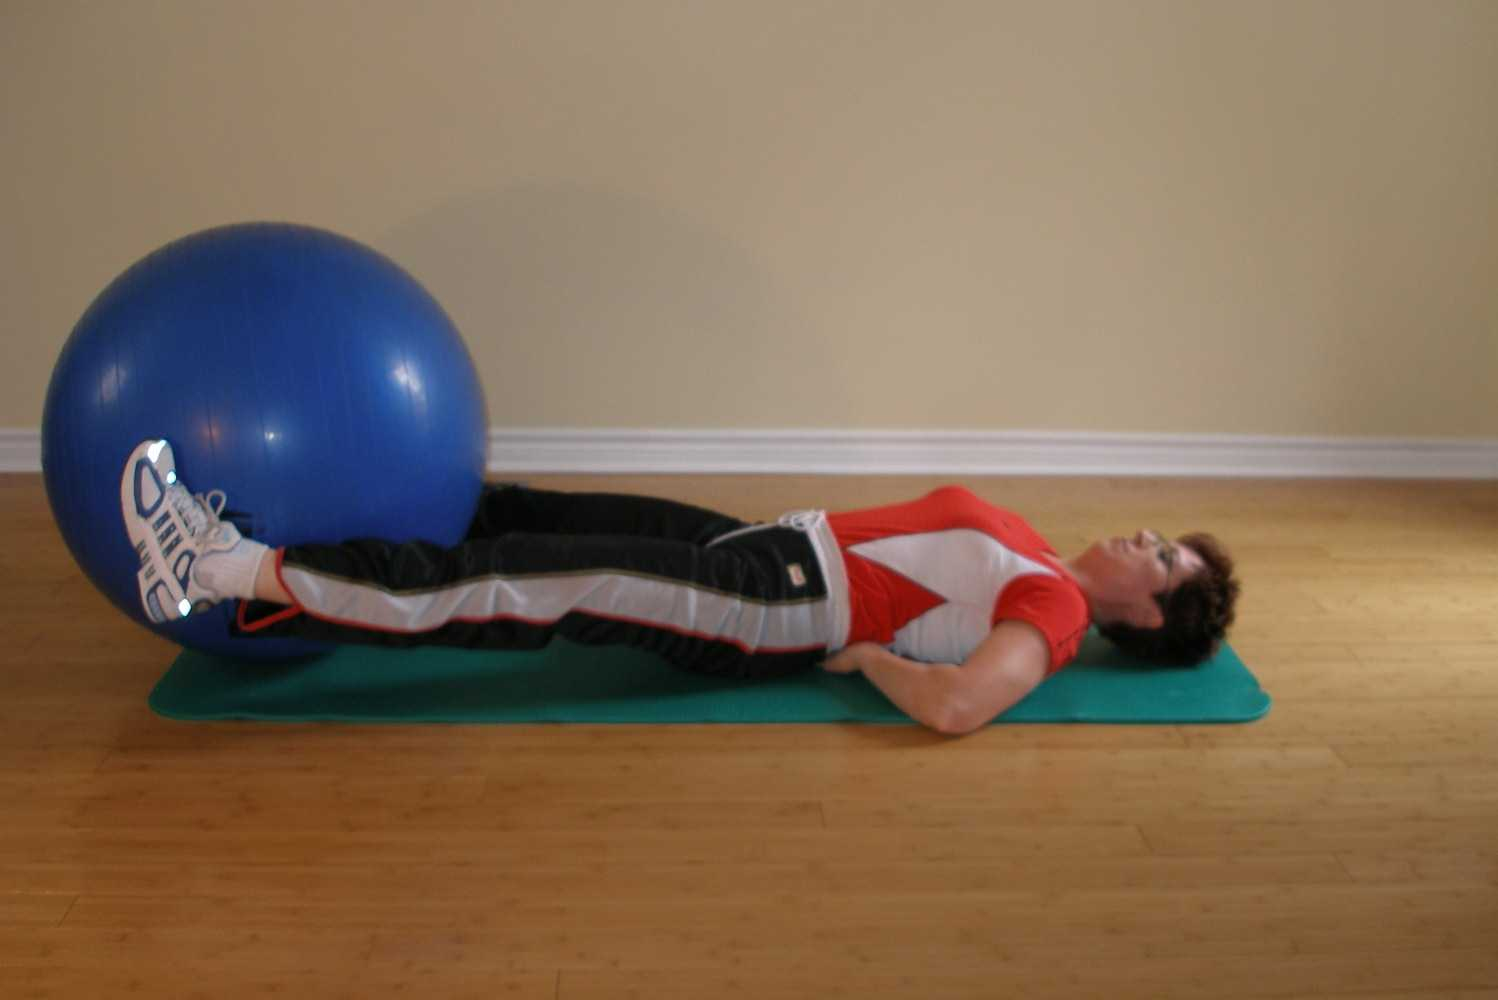 straight leg hip crunch using the exercise ball top position